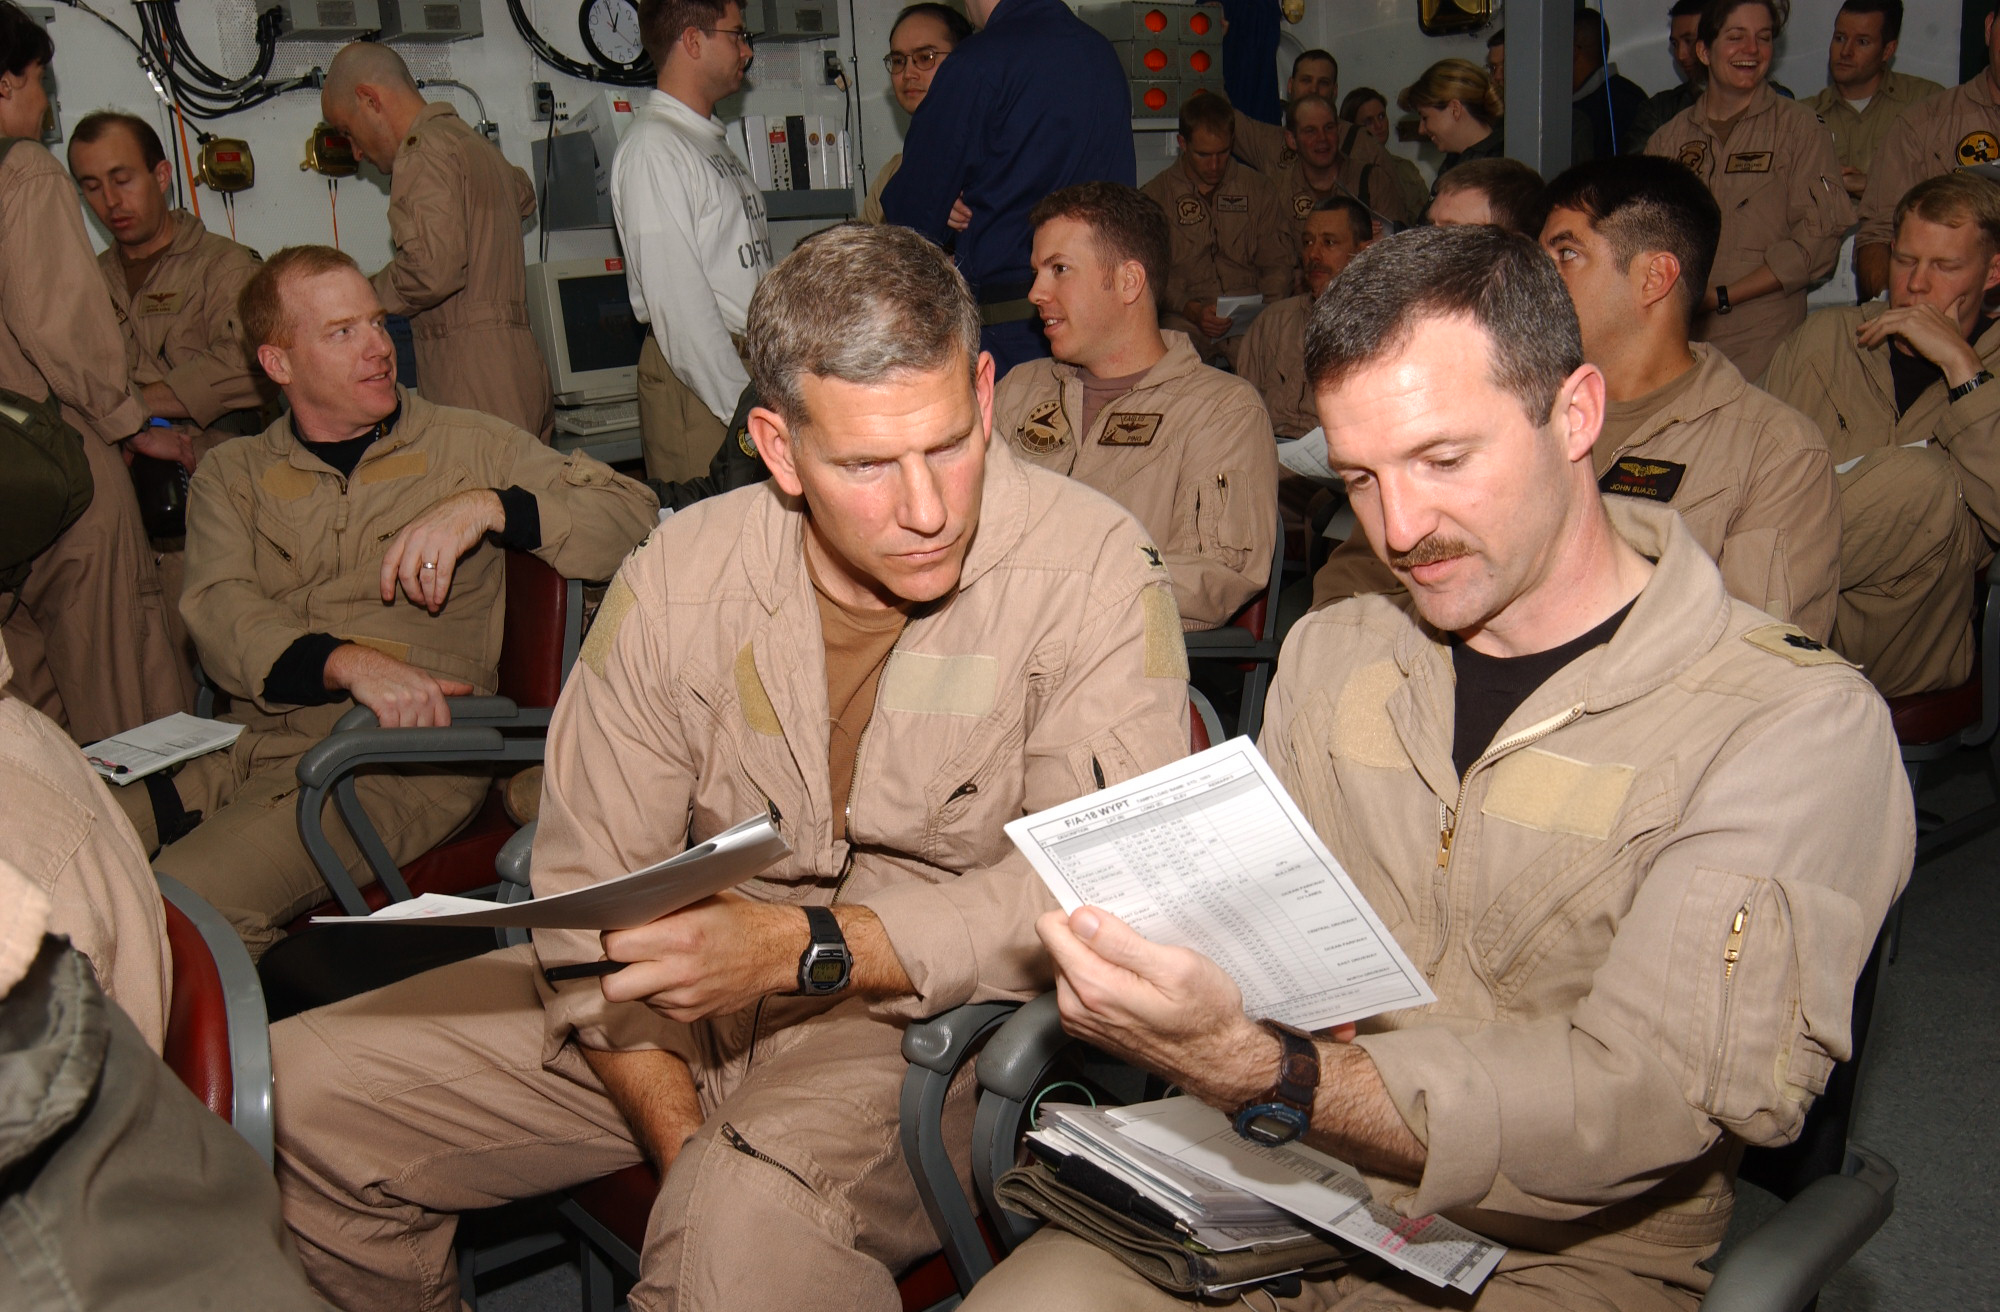 US_Navy_030323-N-5932S-007_Two_Naval_Aviators_assigned_to_Carrier_Air_Wing_Fourteen_(CVW-14)_prepare_for_a_brief_in_a_squadron_ready_room_aboard_the_aircraft_carrier_USS_Abraham_Lincoln_(CVN_72).jpg